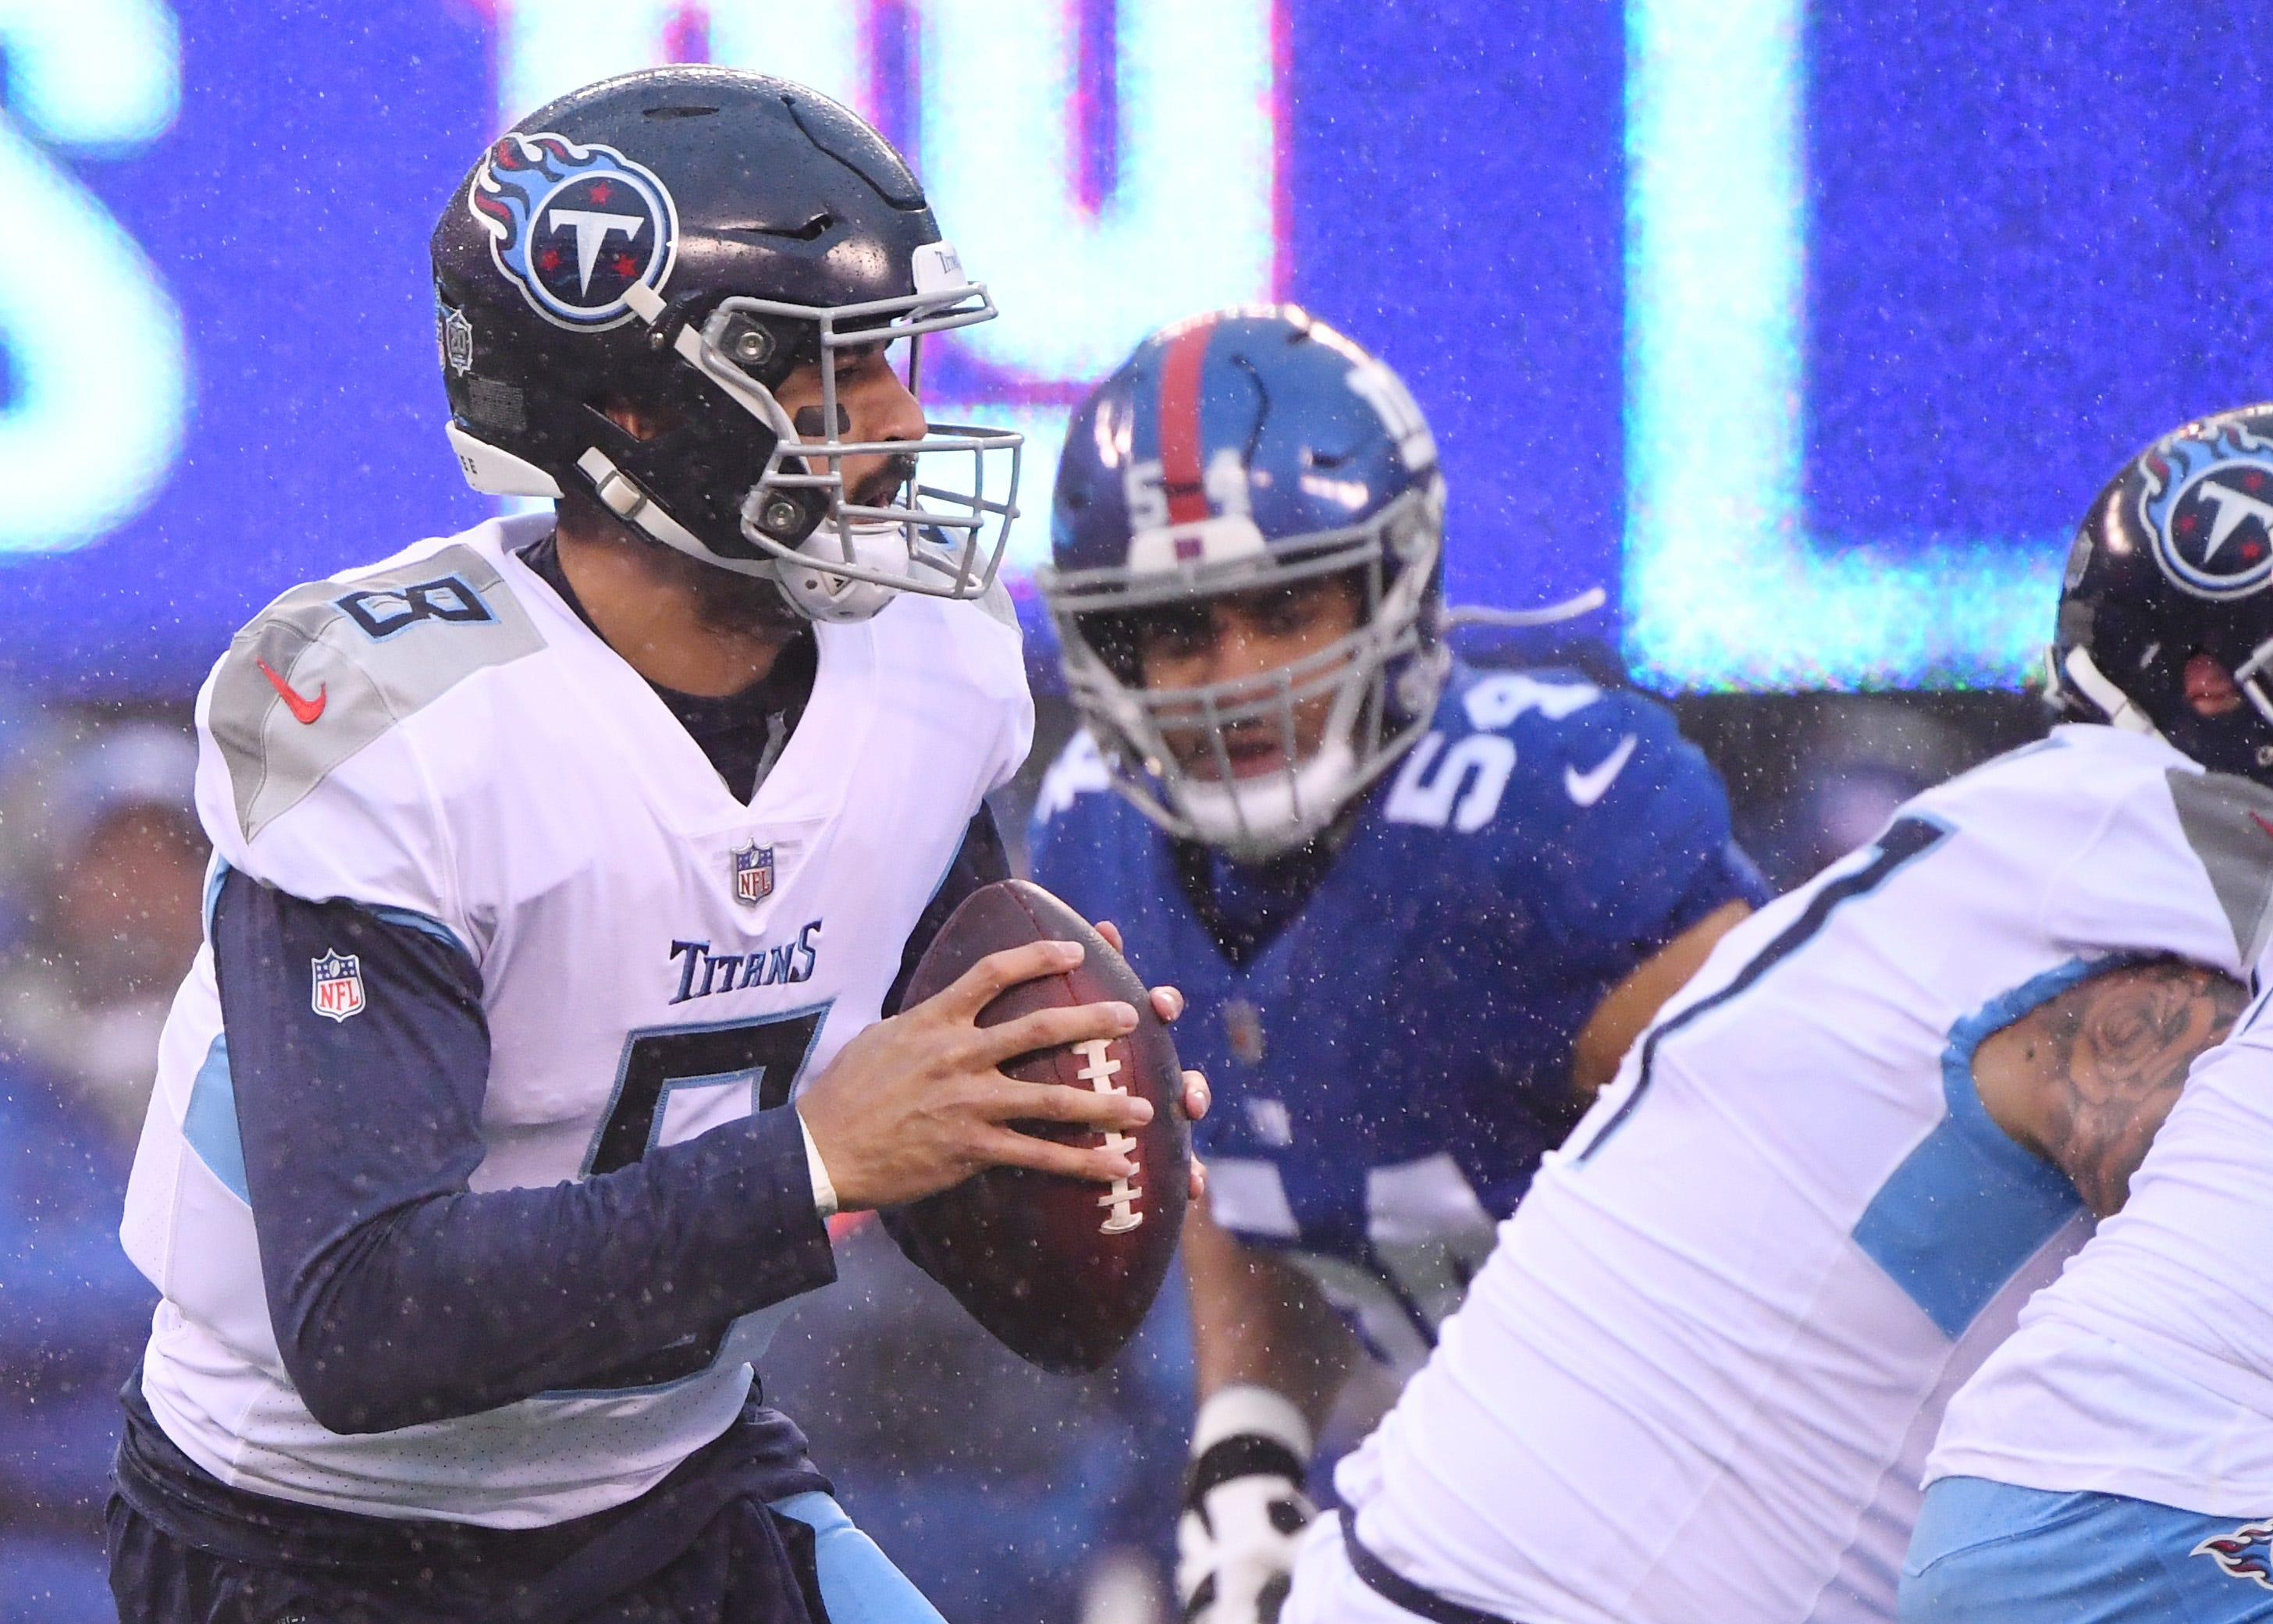 Week 15: Tennessee Titans quarterback Marcus Mariota rolls out to pass against the New York Giants in the rain at MetLife Stadium. The Titans won the game, 17-0.